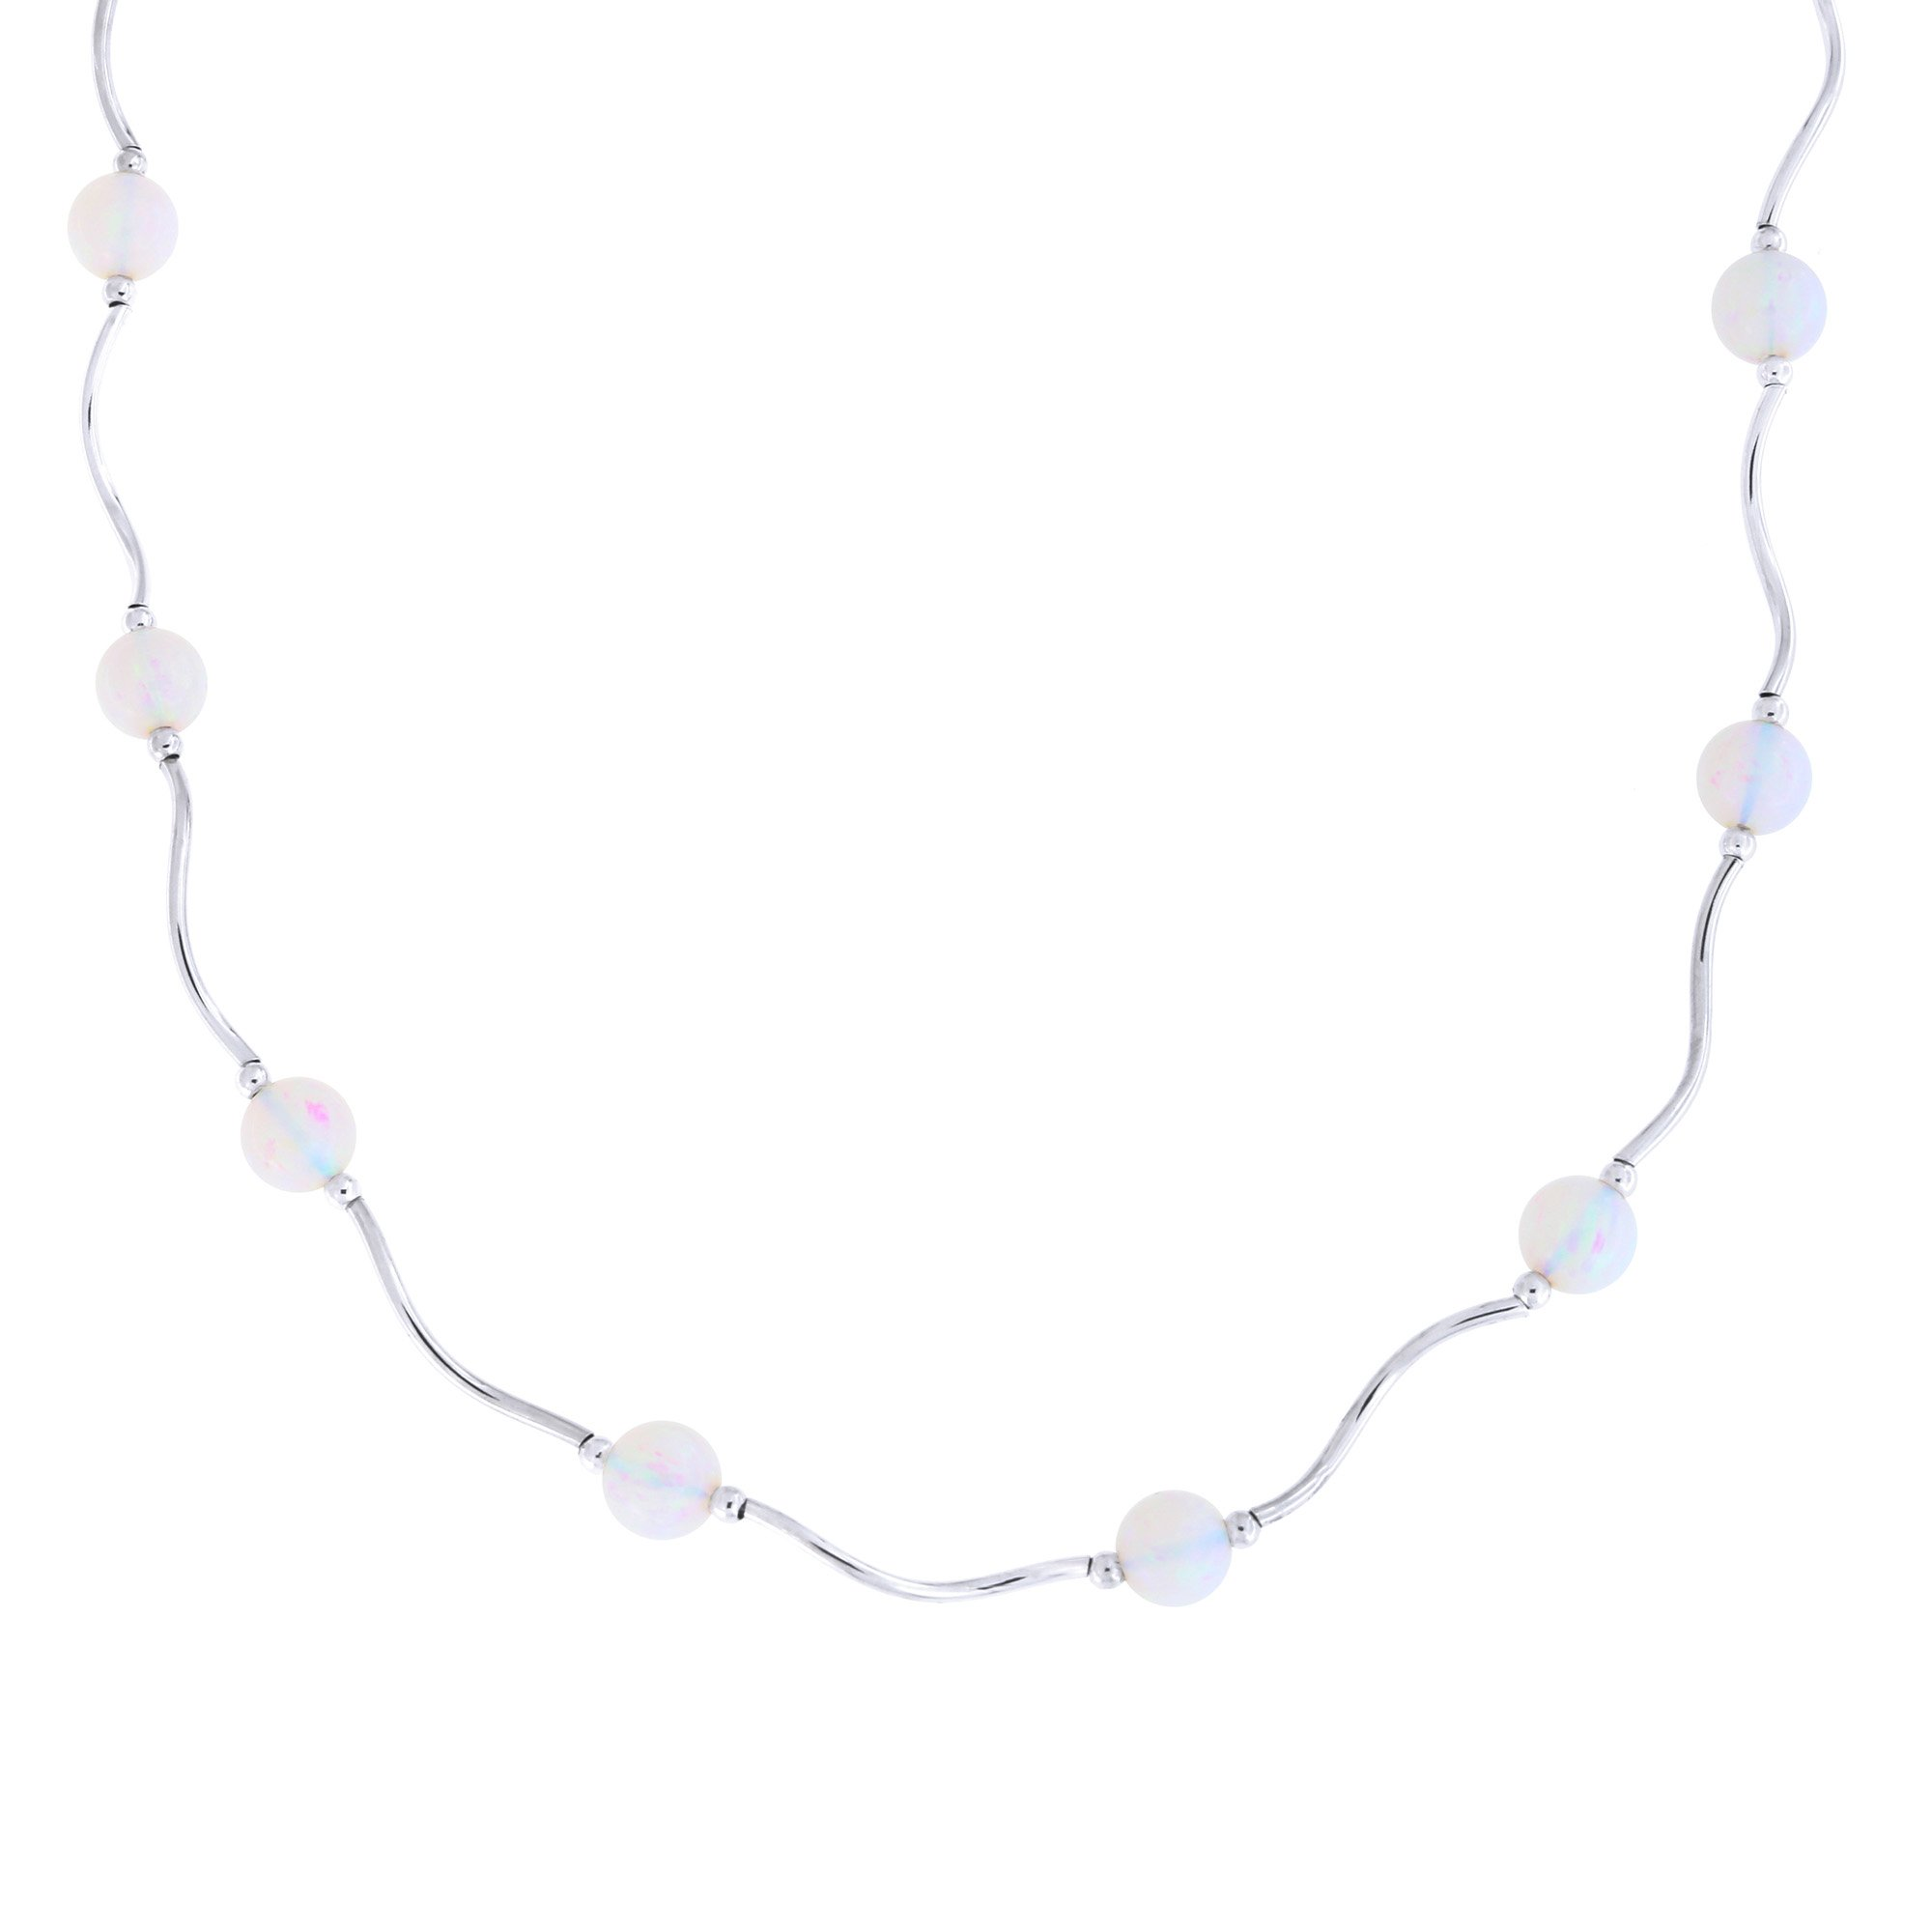 Sterling Silver Rhodium Plated 6mm Simulated White Opal Station Necklace, 17.5 inches